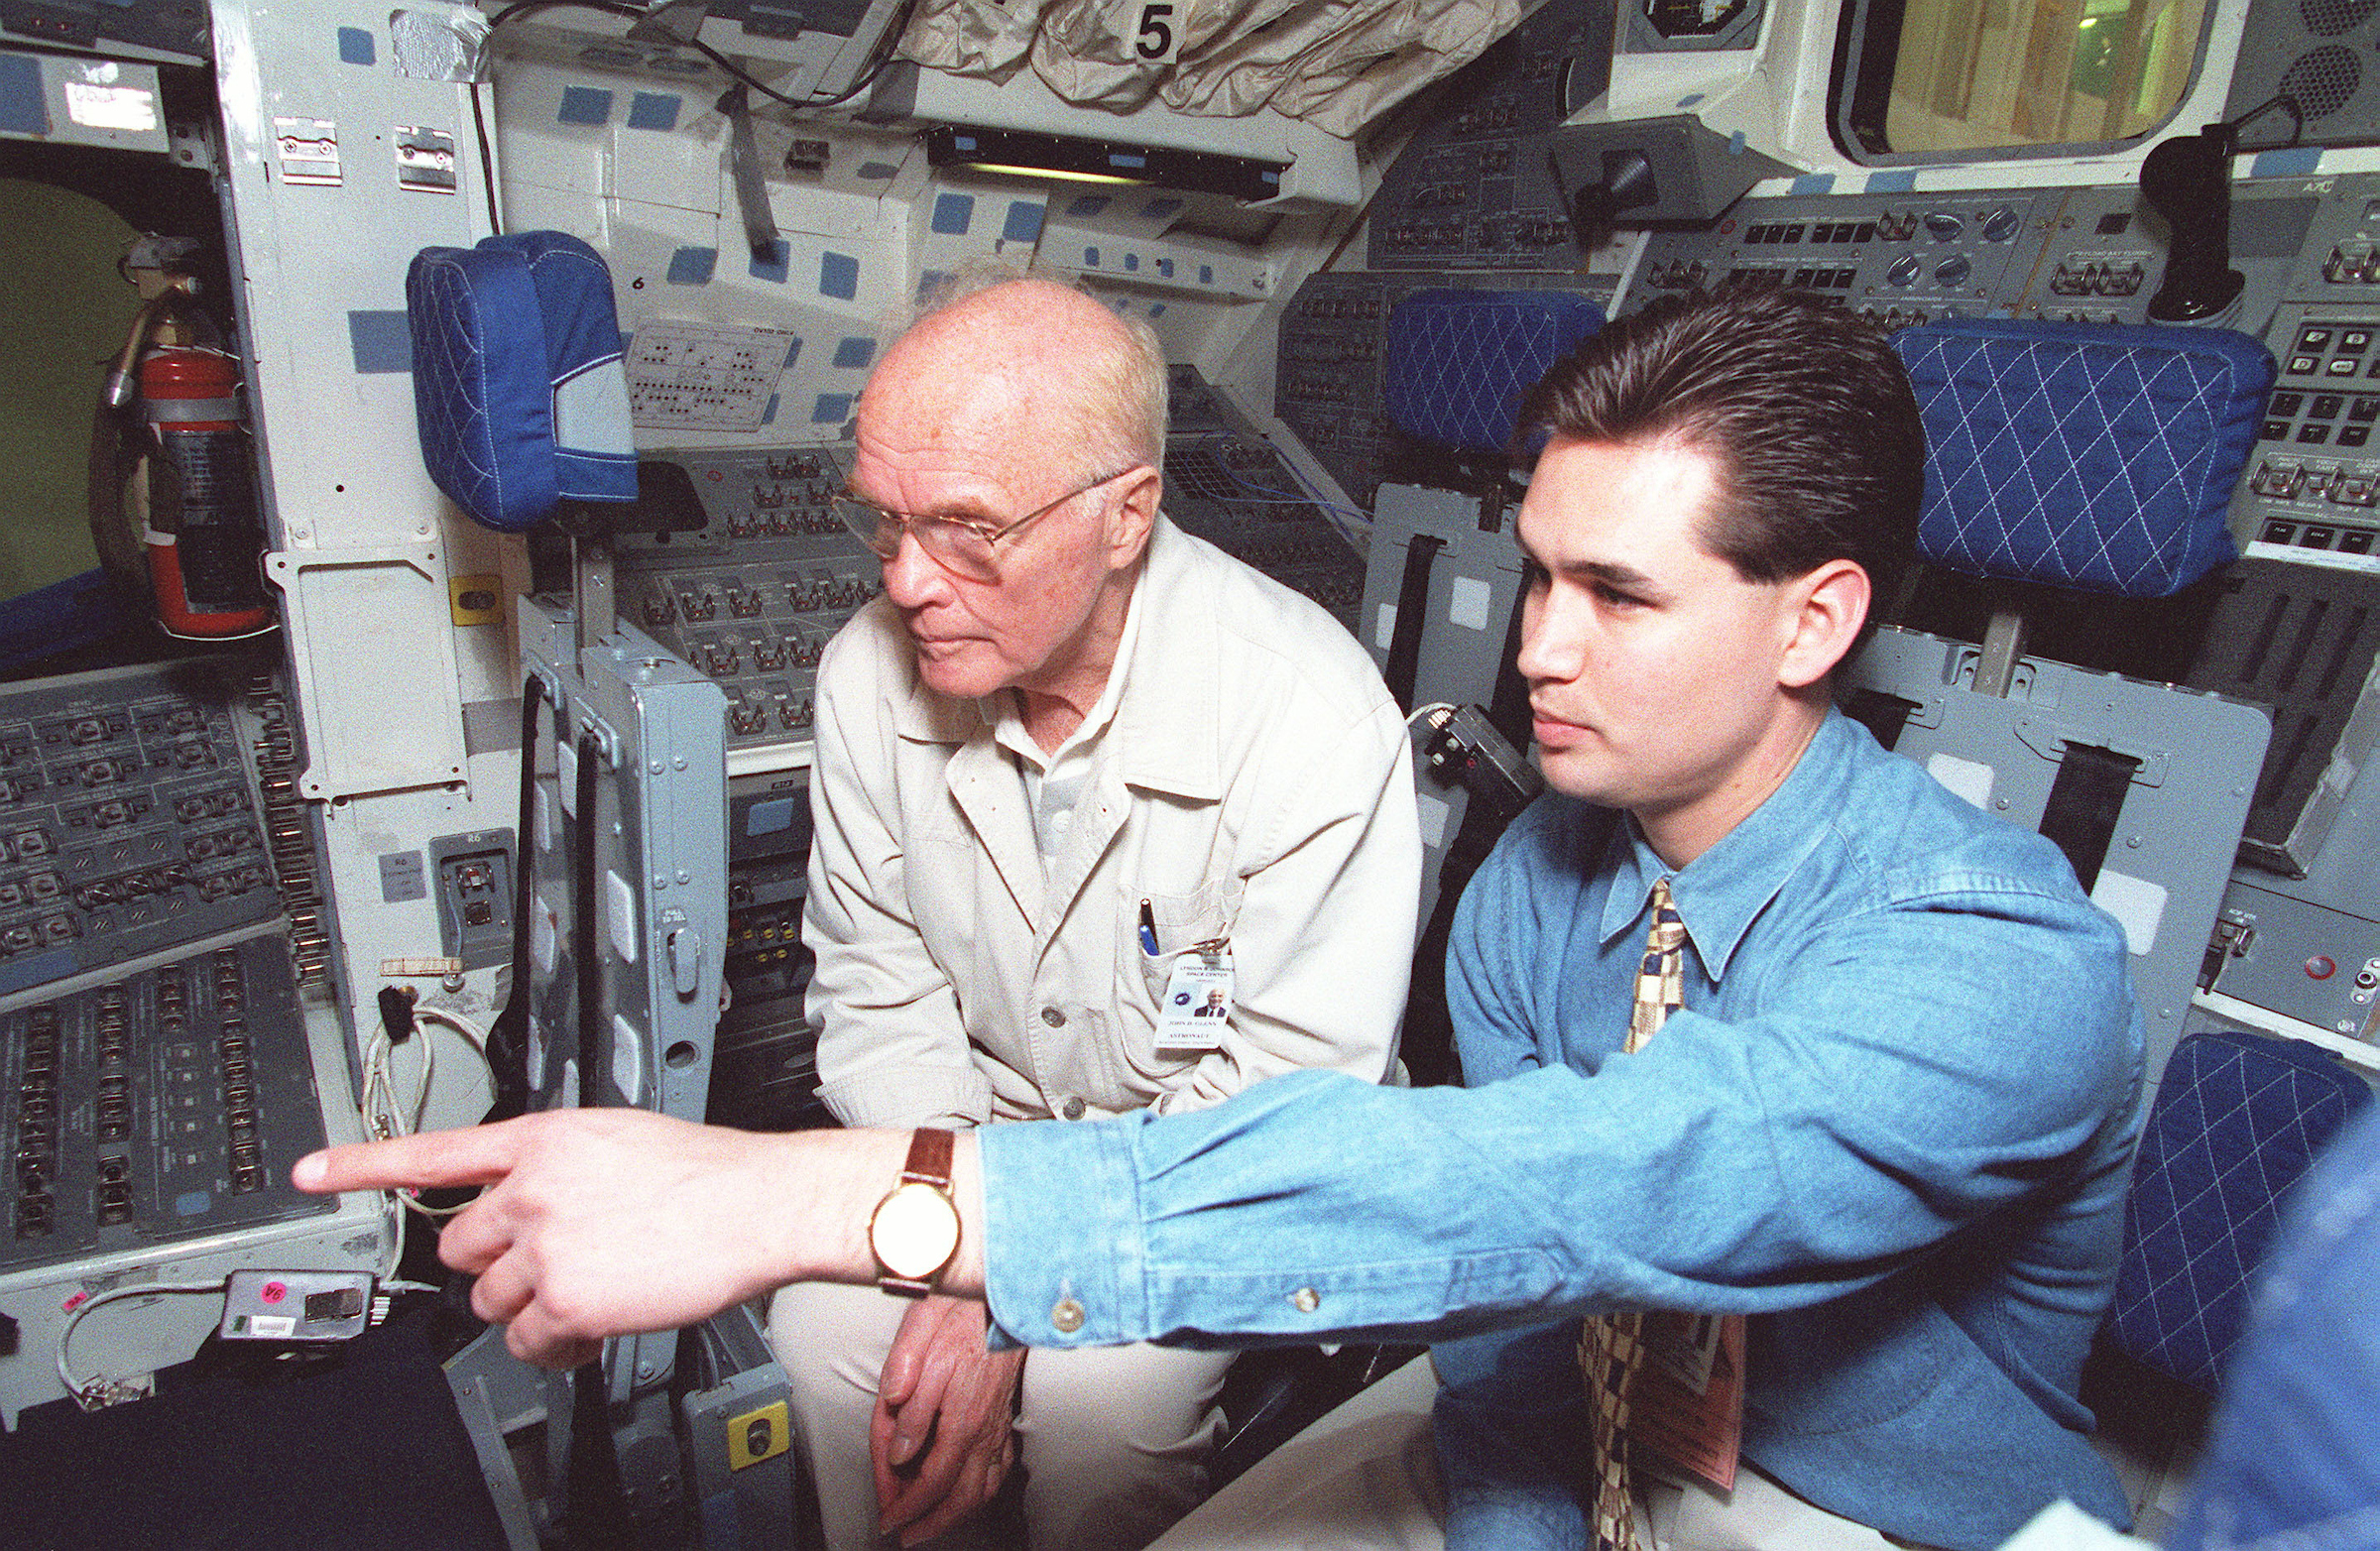 April 1998: Sen. John Glenn, D.-Ohio, is seated on the flight deck of the crew compartment trainer while being briefed by crew trainer Adam Flagler. Flagler is pointing toward the displays and controls at the commander's station, forward cabin. Glenn has begun training at the Johnson Space Center for the STS-95 space flight, scheduled for launch later in the year. (Photo courtesy of NASA)